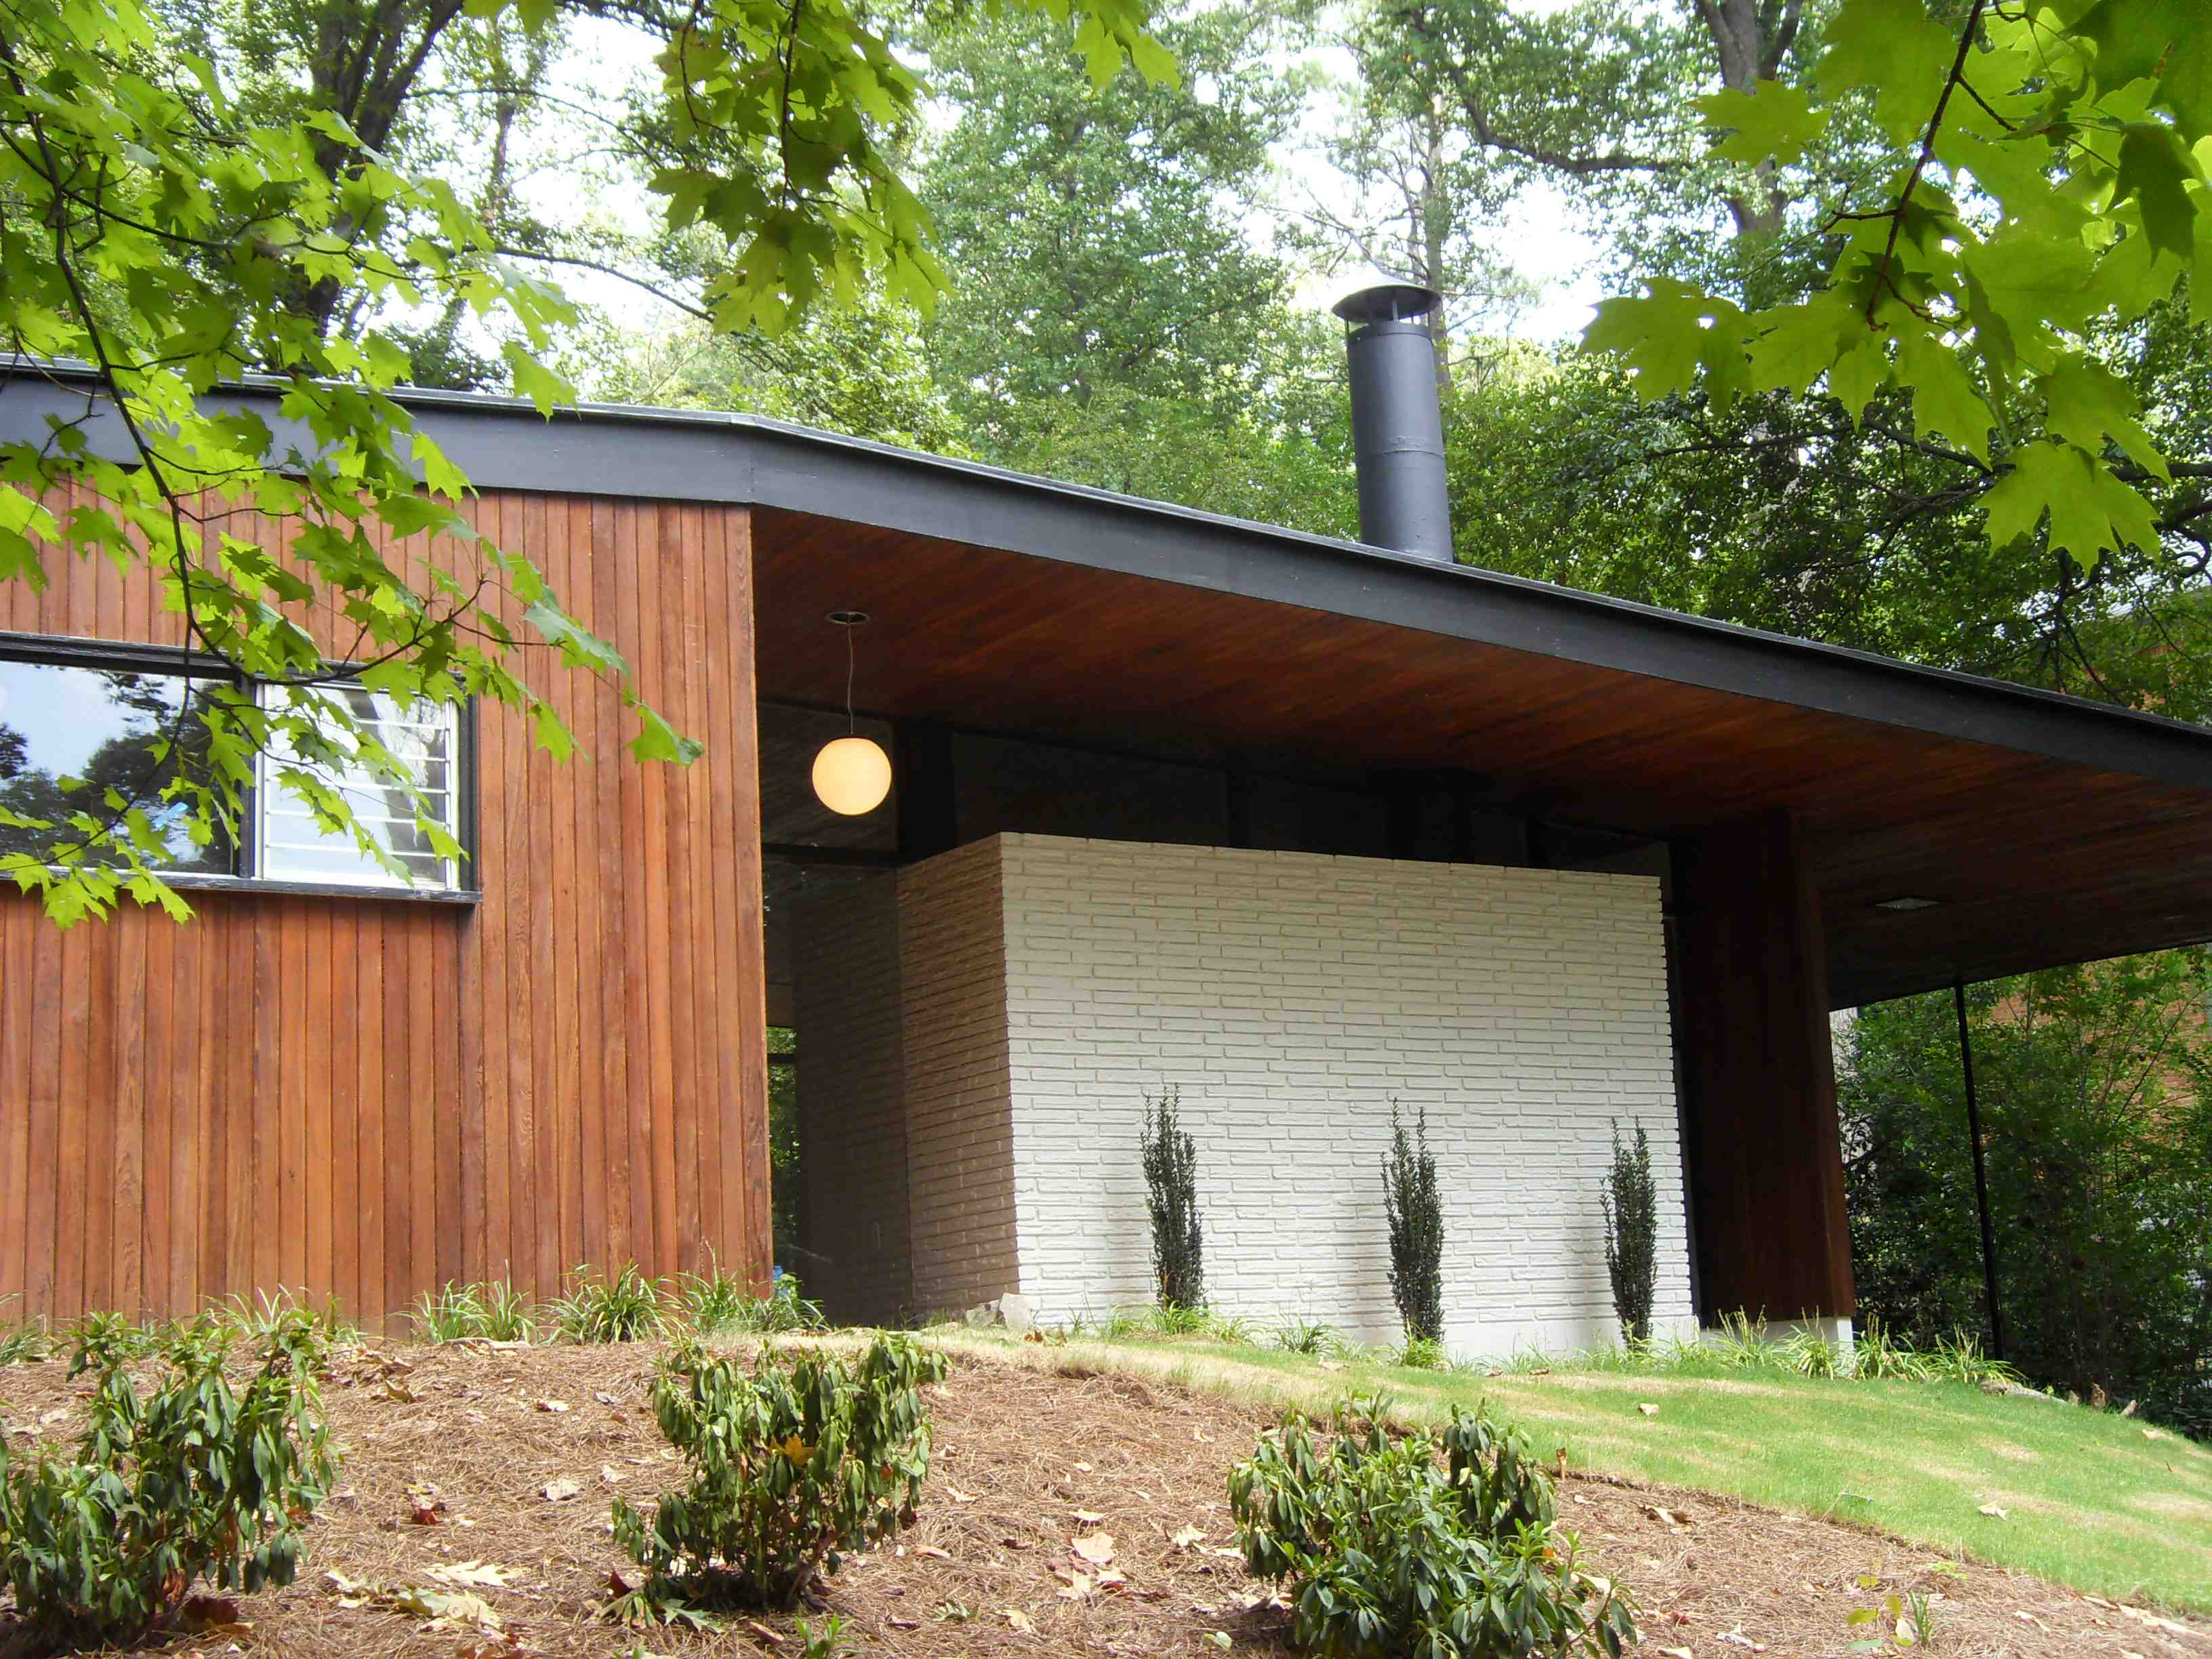 Modern atlanta homes for sale archives domorealty for Modern style houses for sale